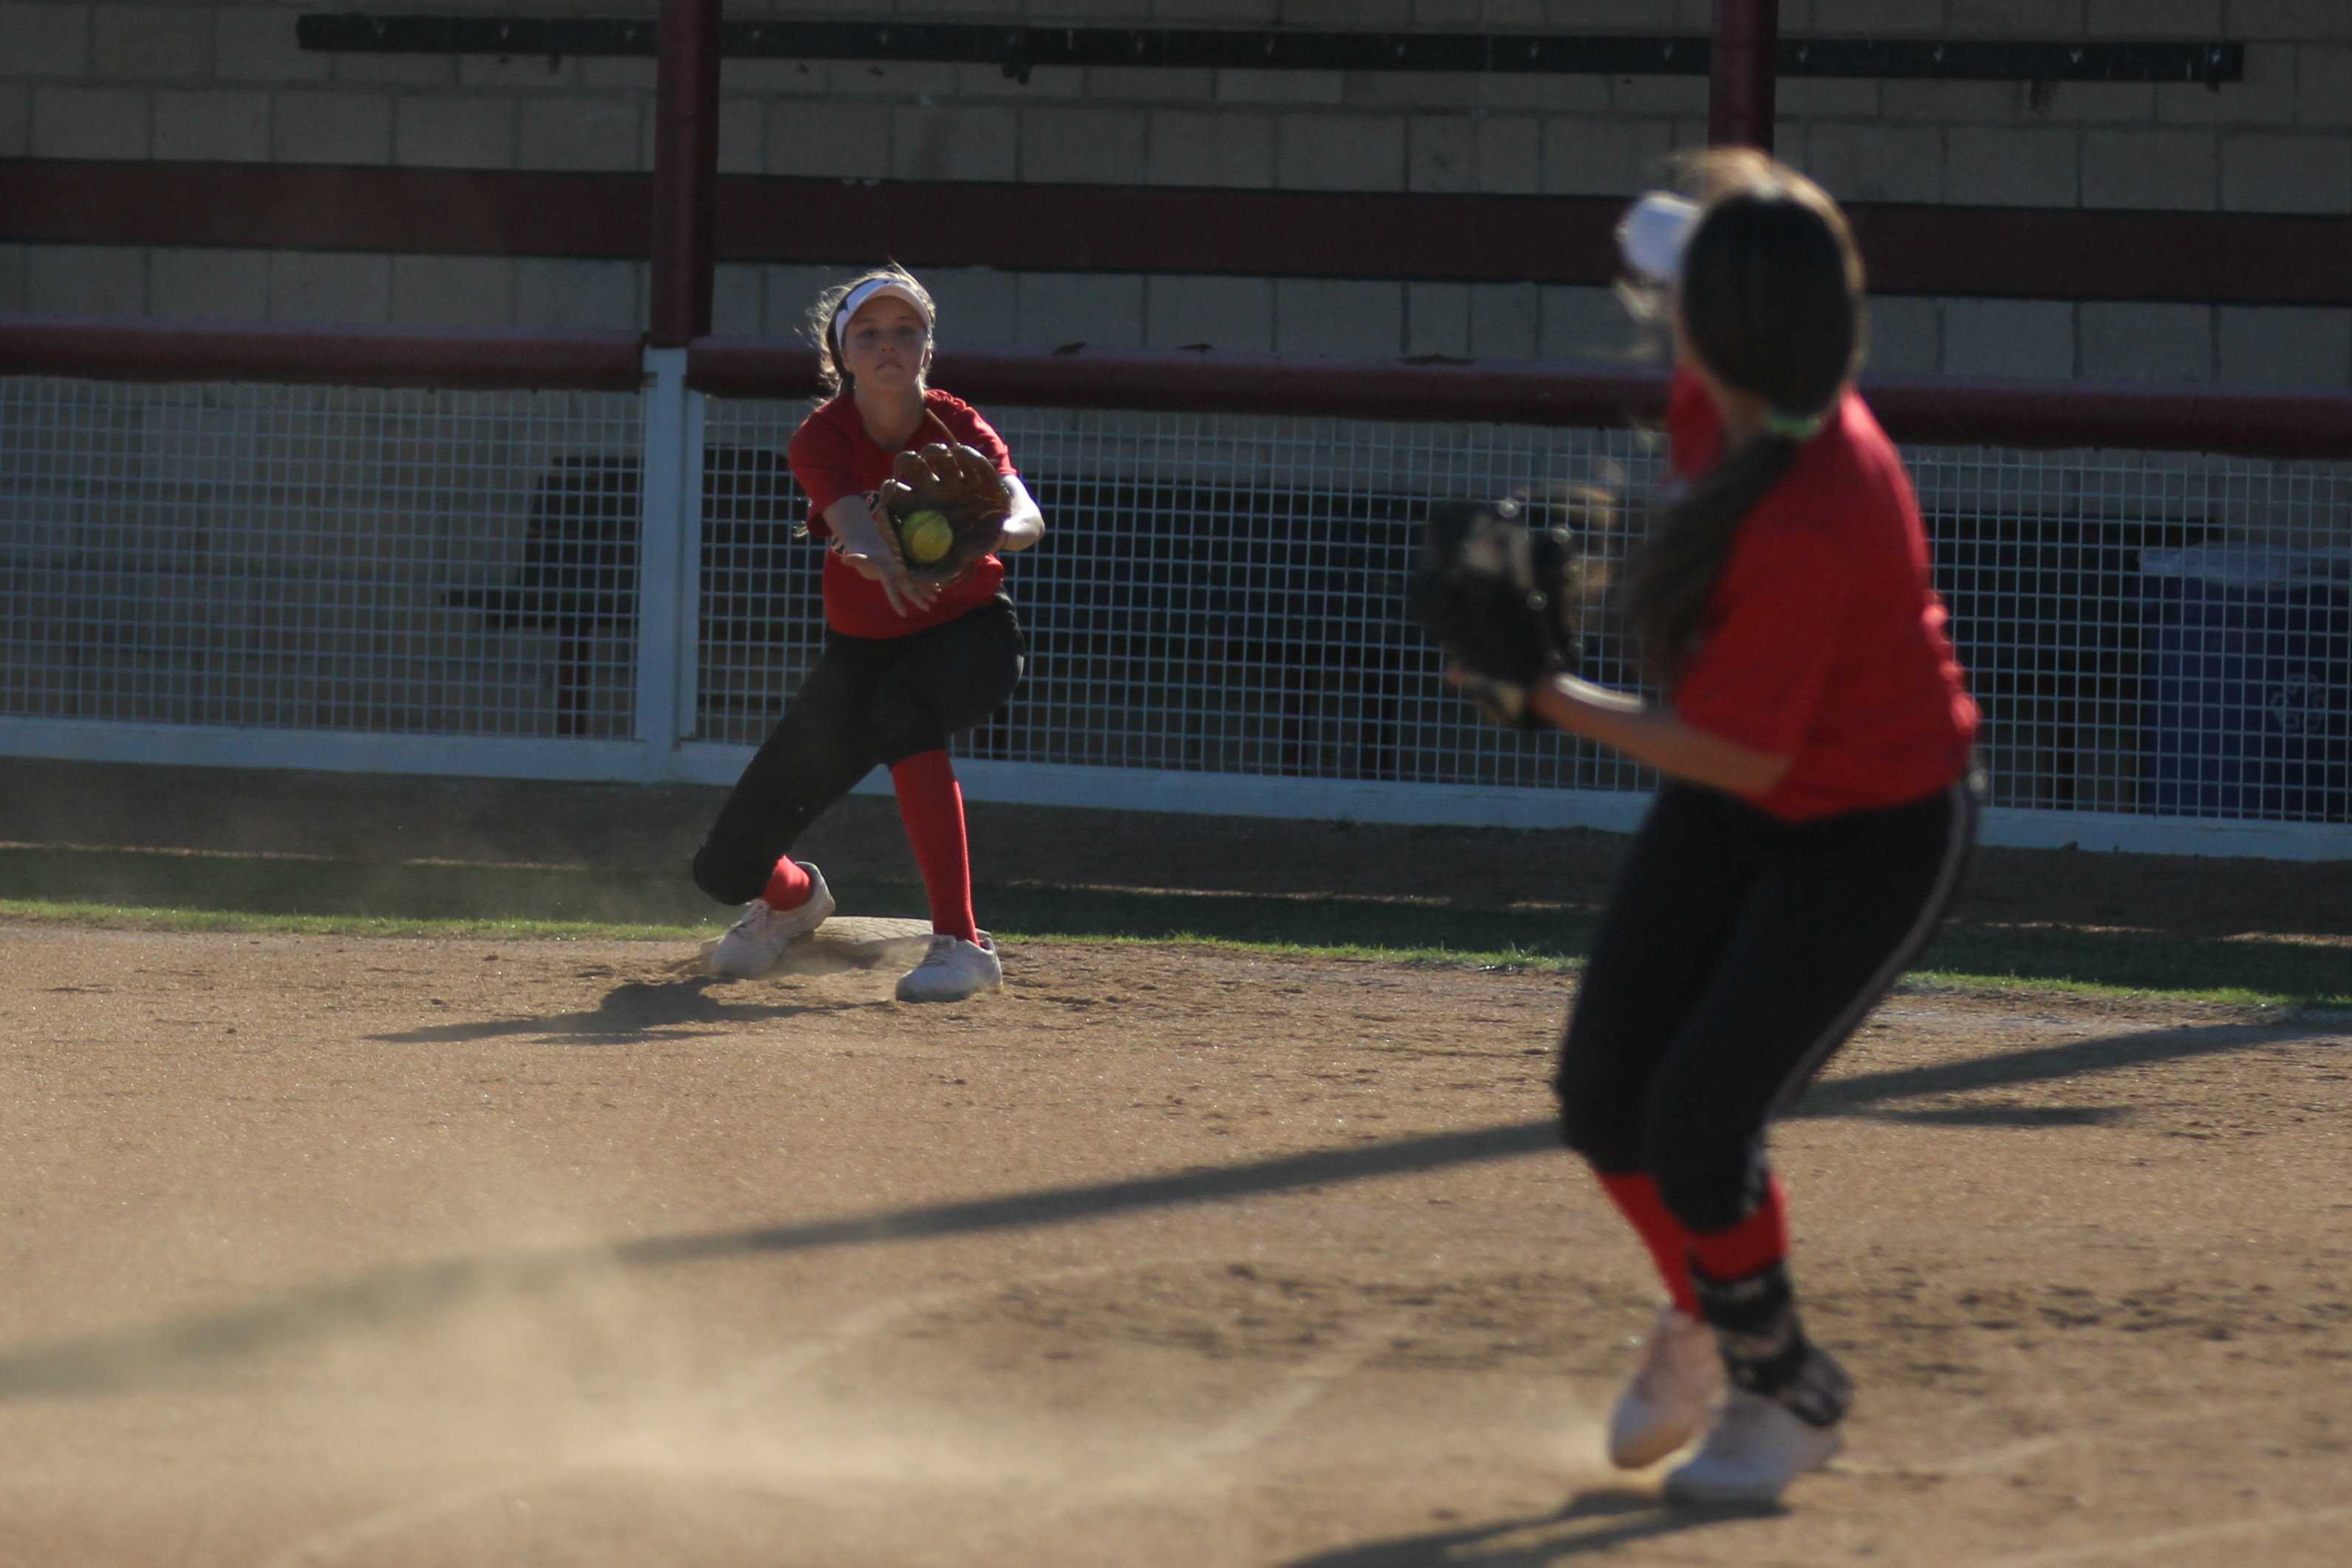 Rebecca Holliman practices covering first base in the week leading up to the McKinney tournament.